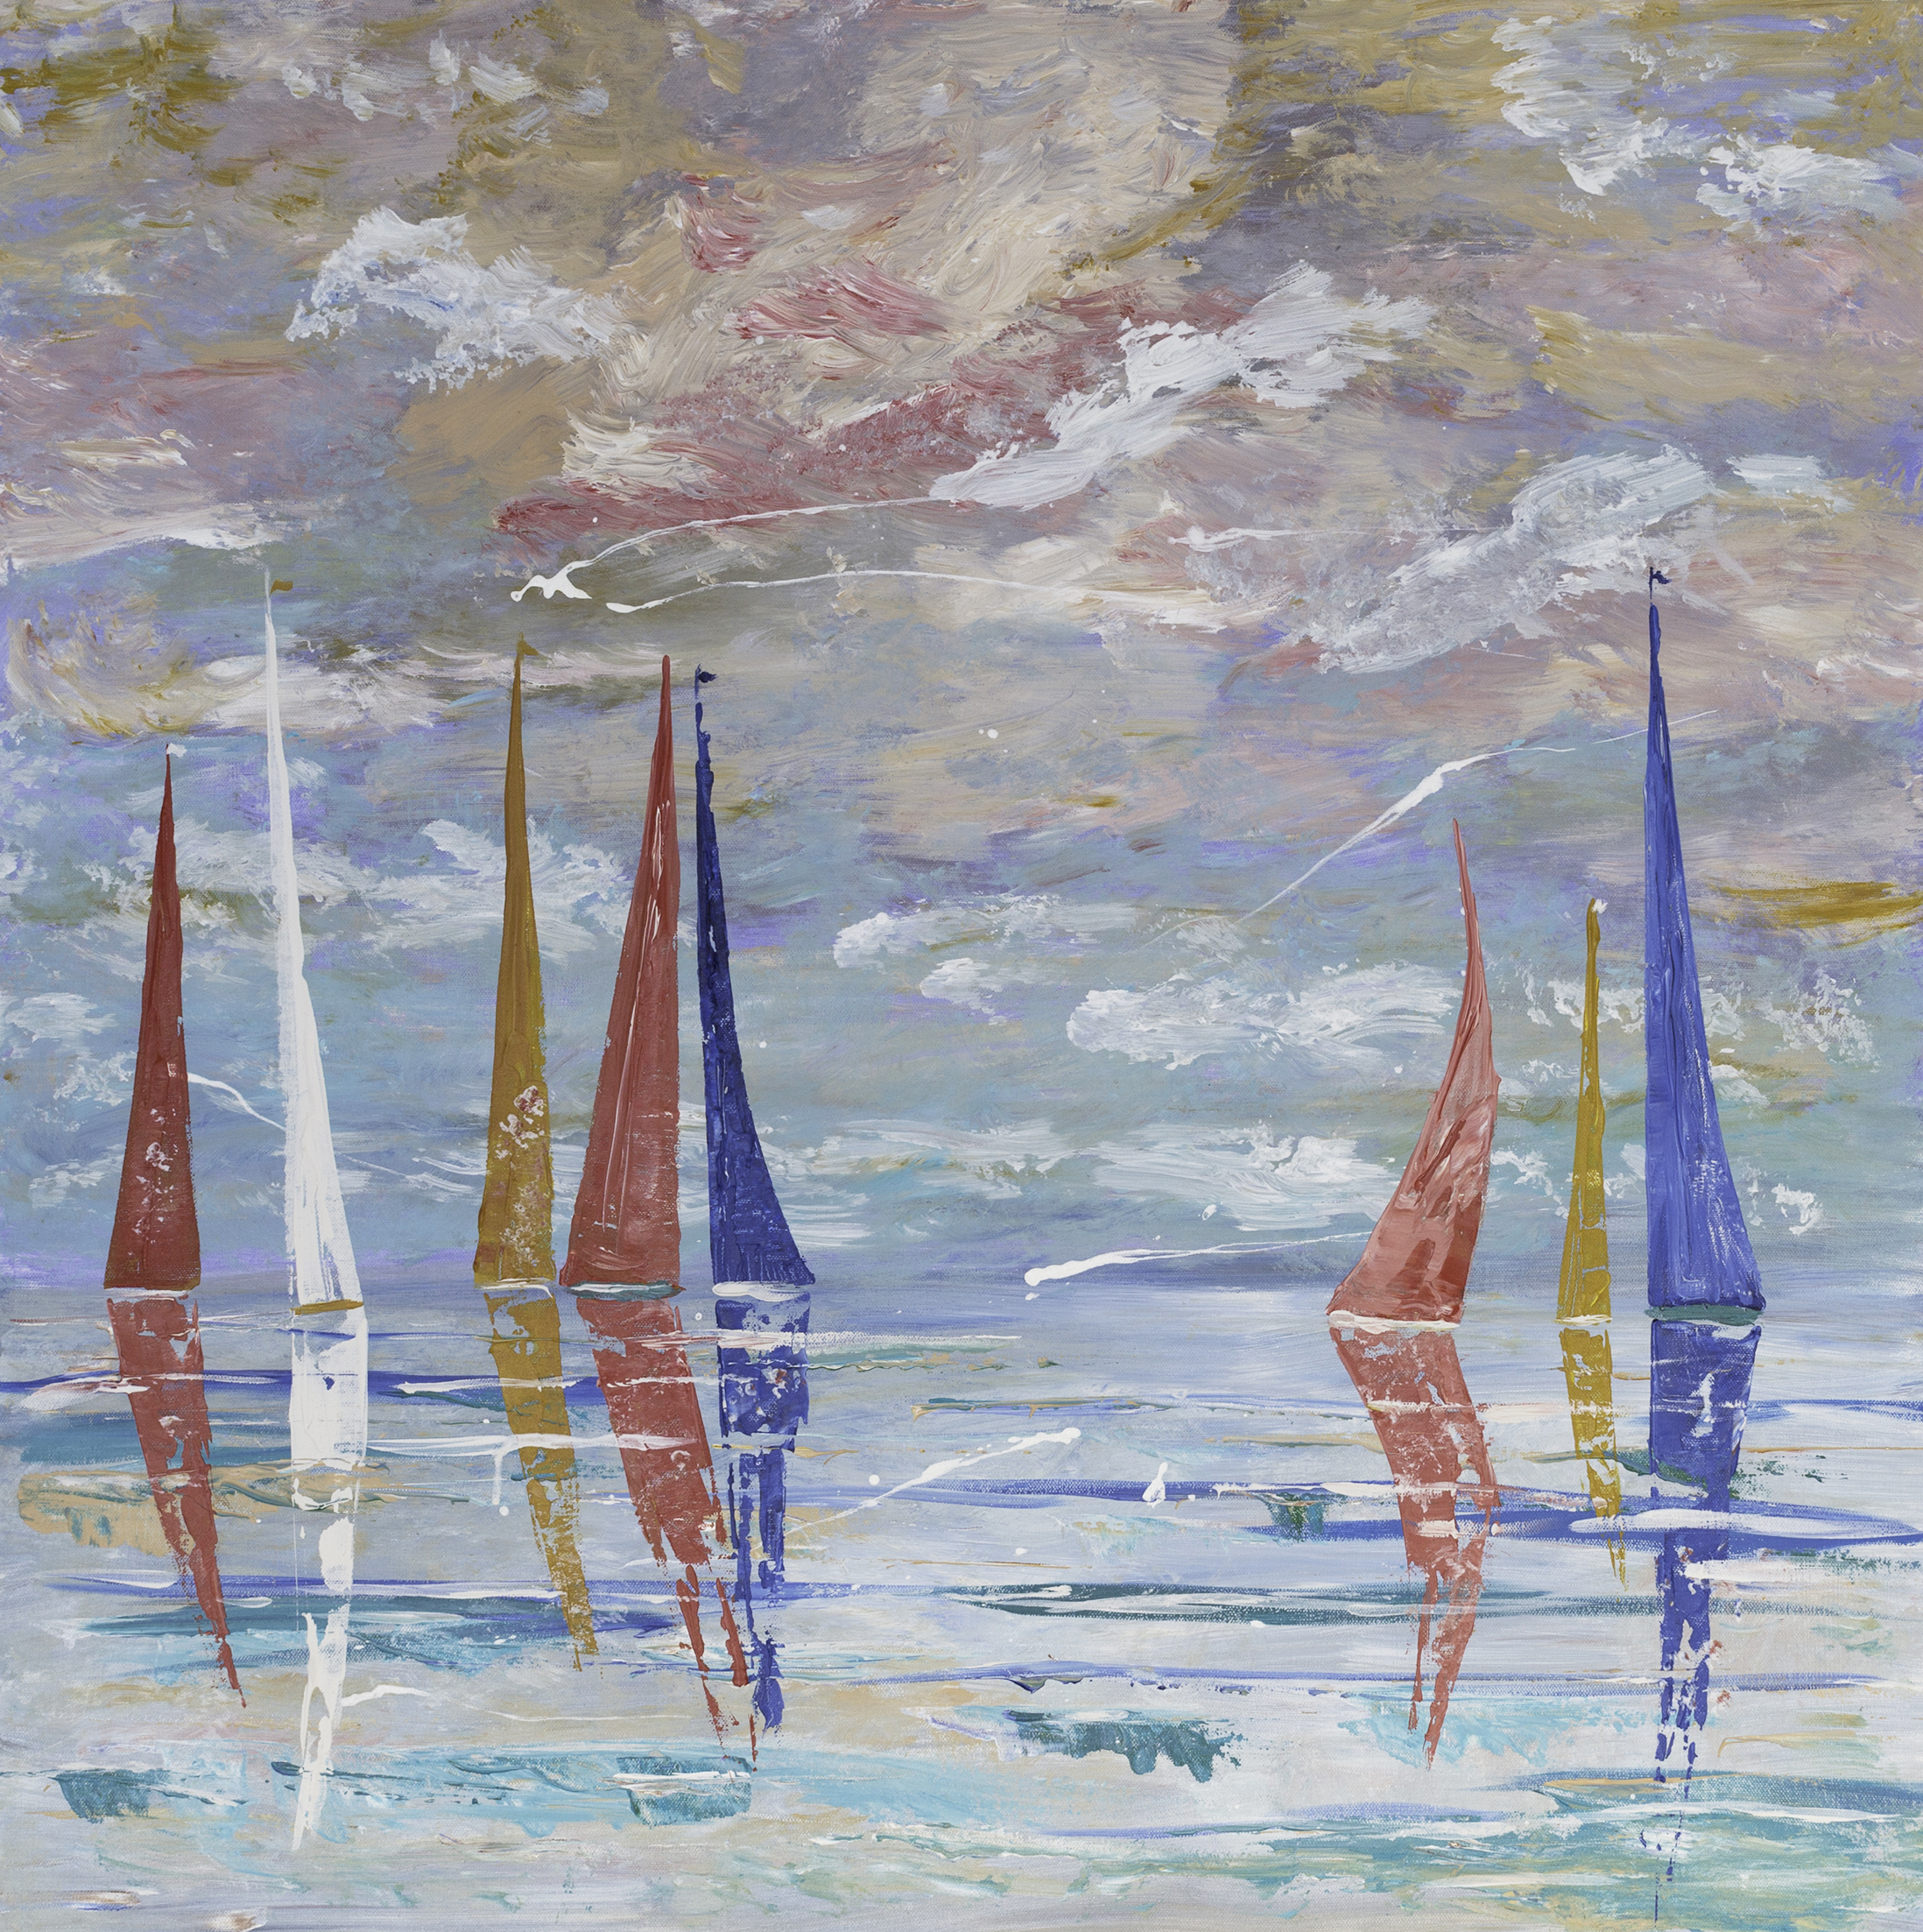 'Yachts' is painted onto a stretched canvas measuring 91cm square and 3.5cm deep using acrylic paints. The original and limited edition prints are available.